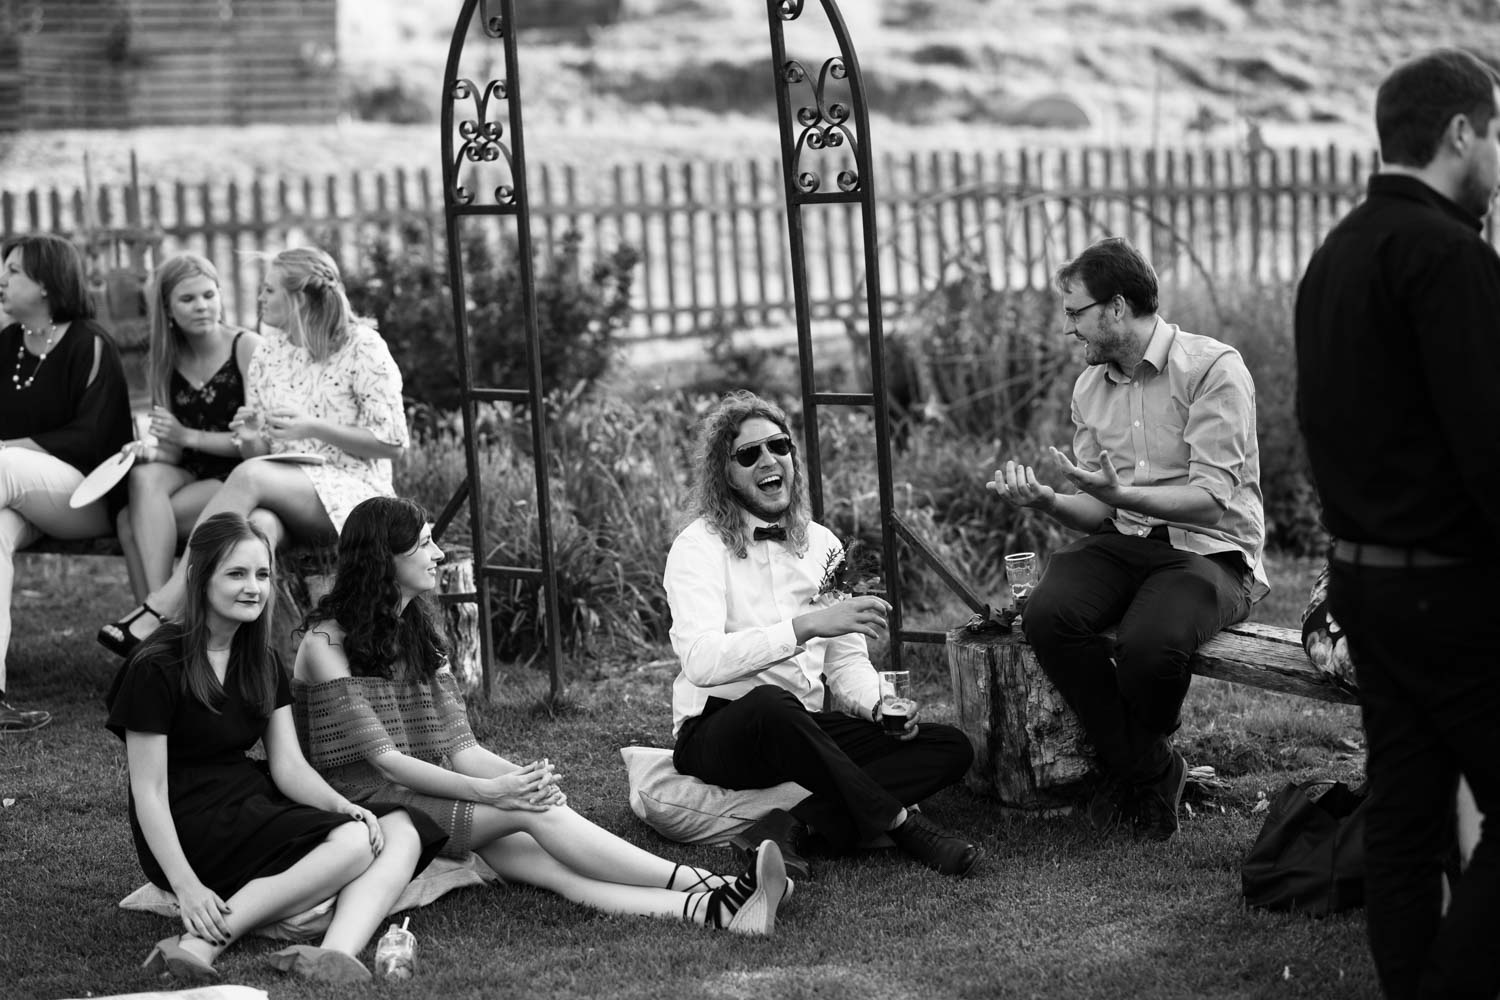 Candid Moments Between Wedding Guests On Lawn During Wedding Cocktail Hour